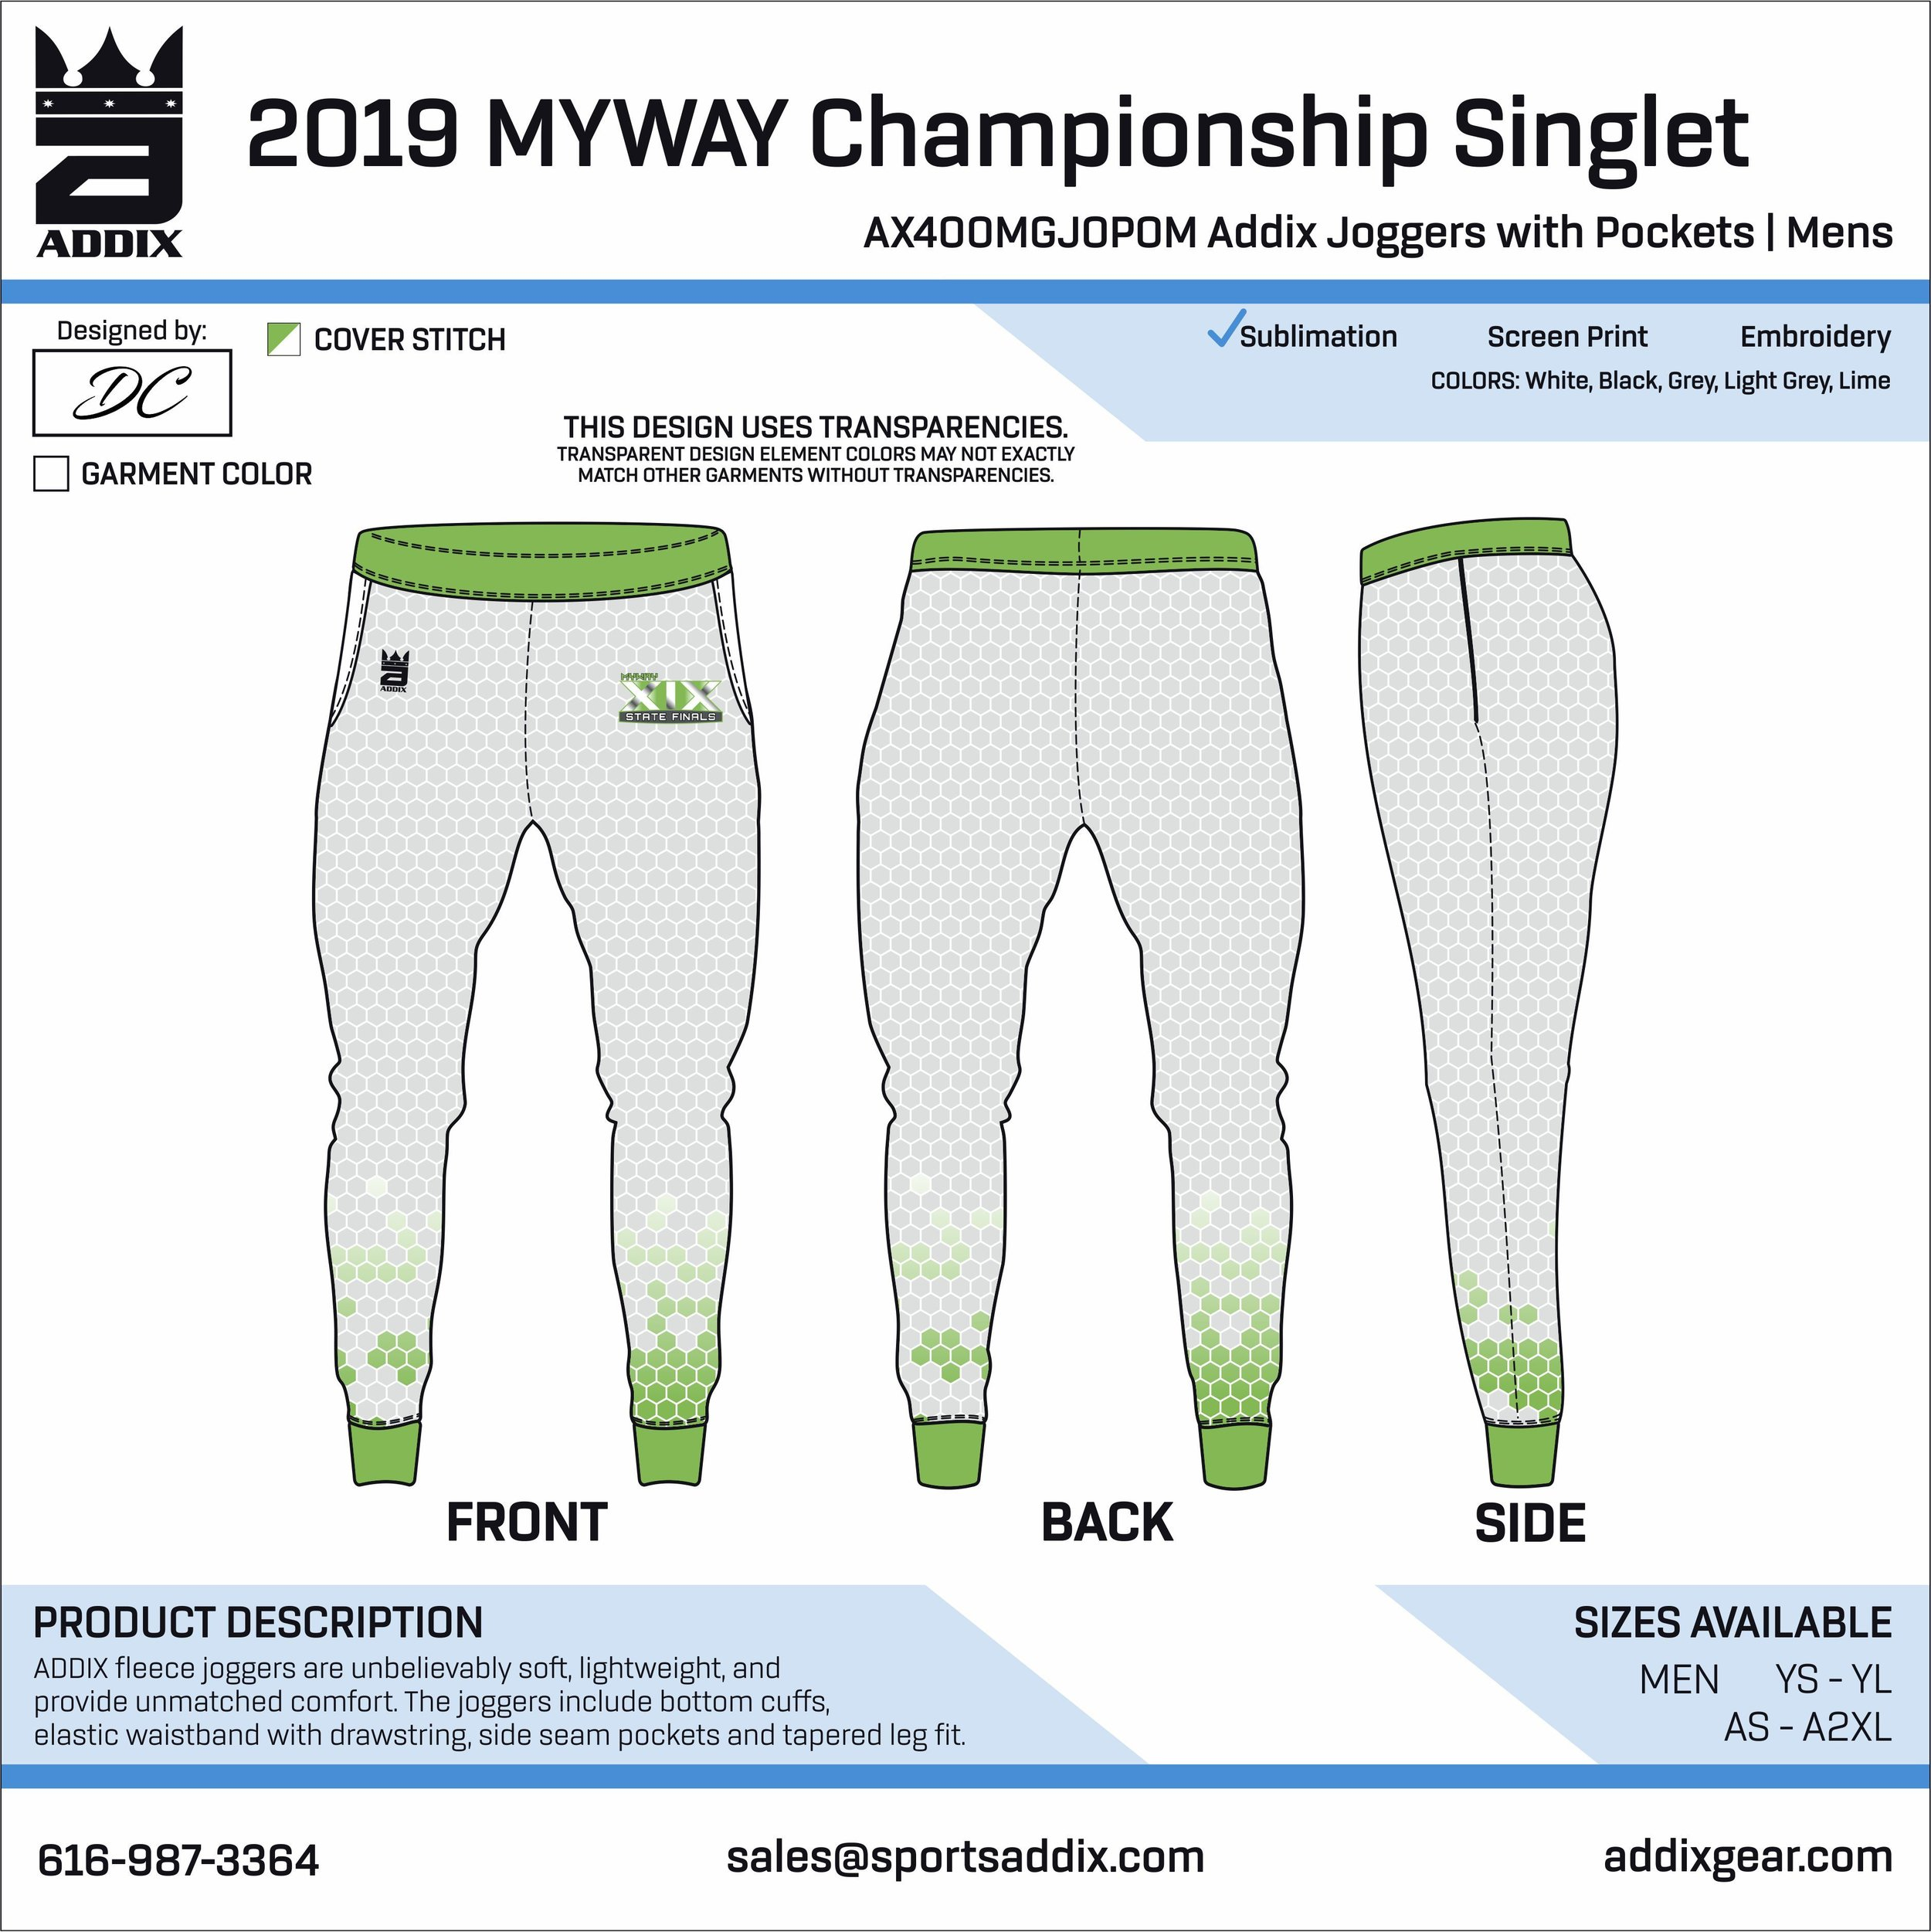 2019 MYWAY Championship Singlet_2019_2-13_DC_Joggers.jpg